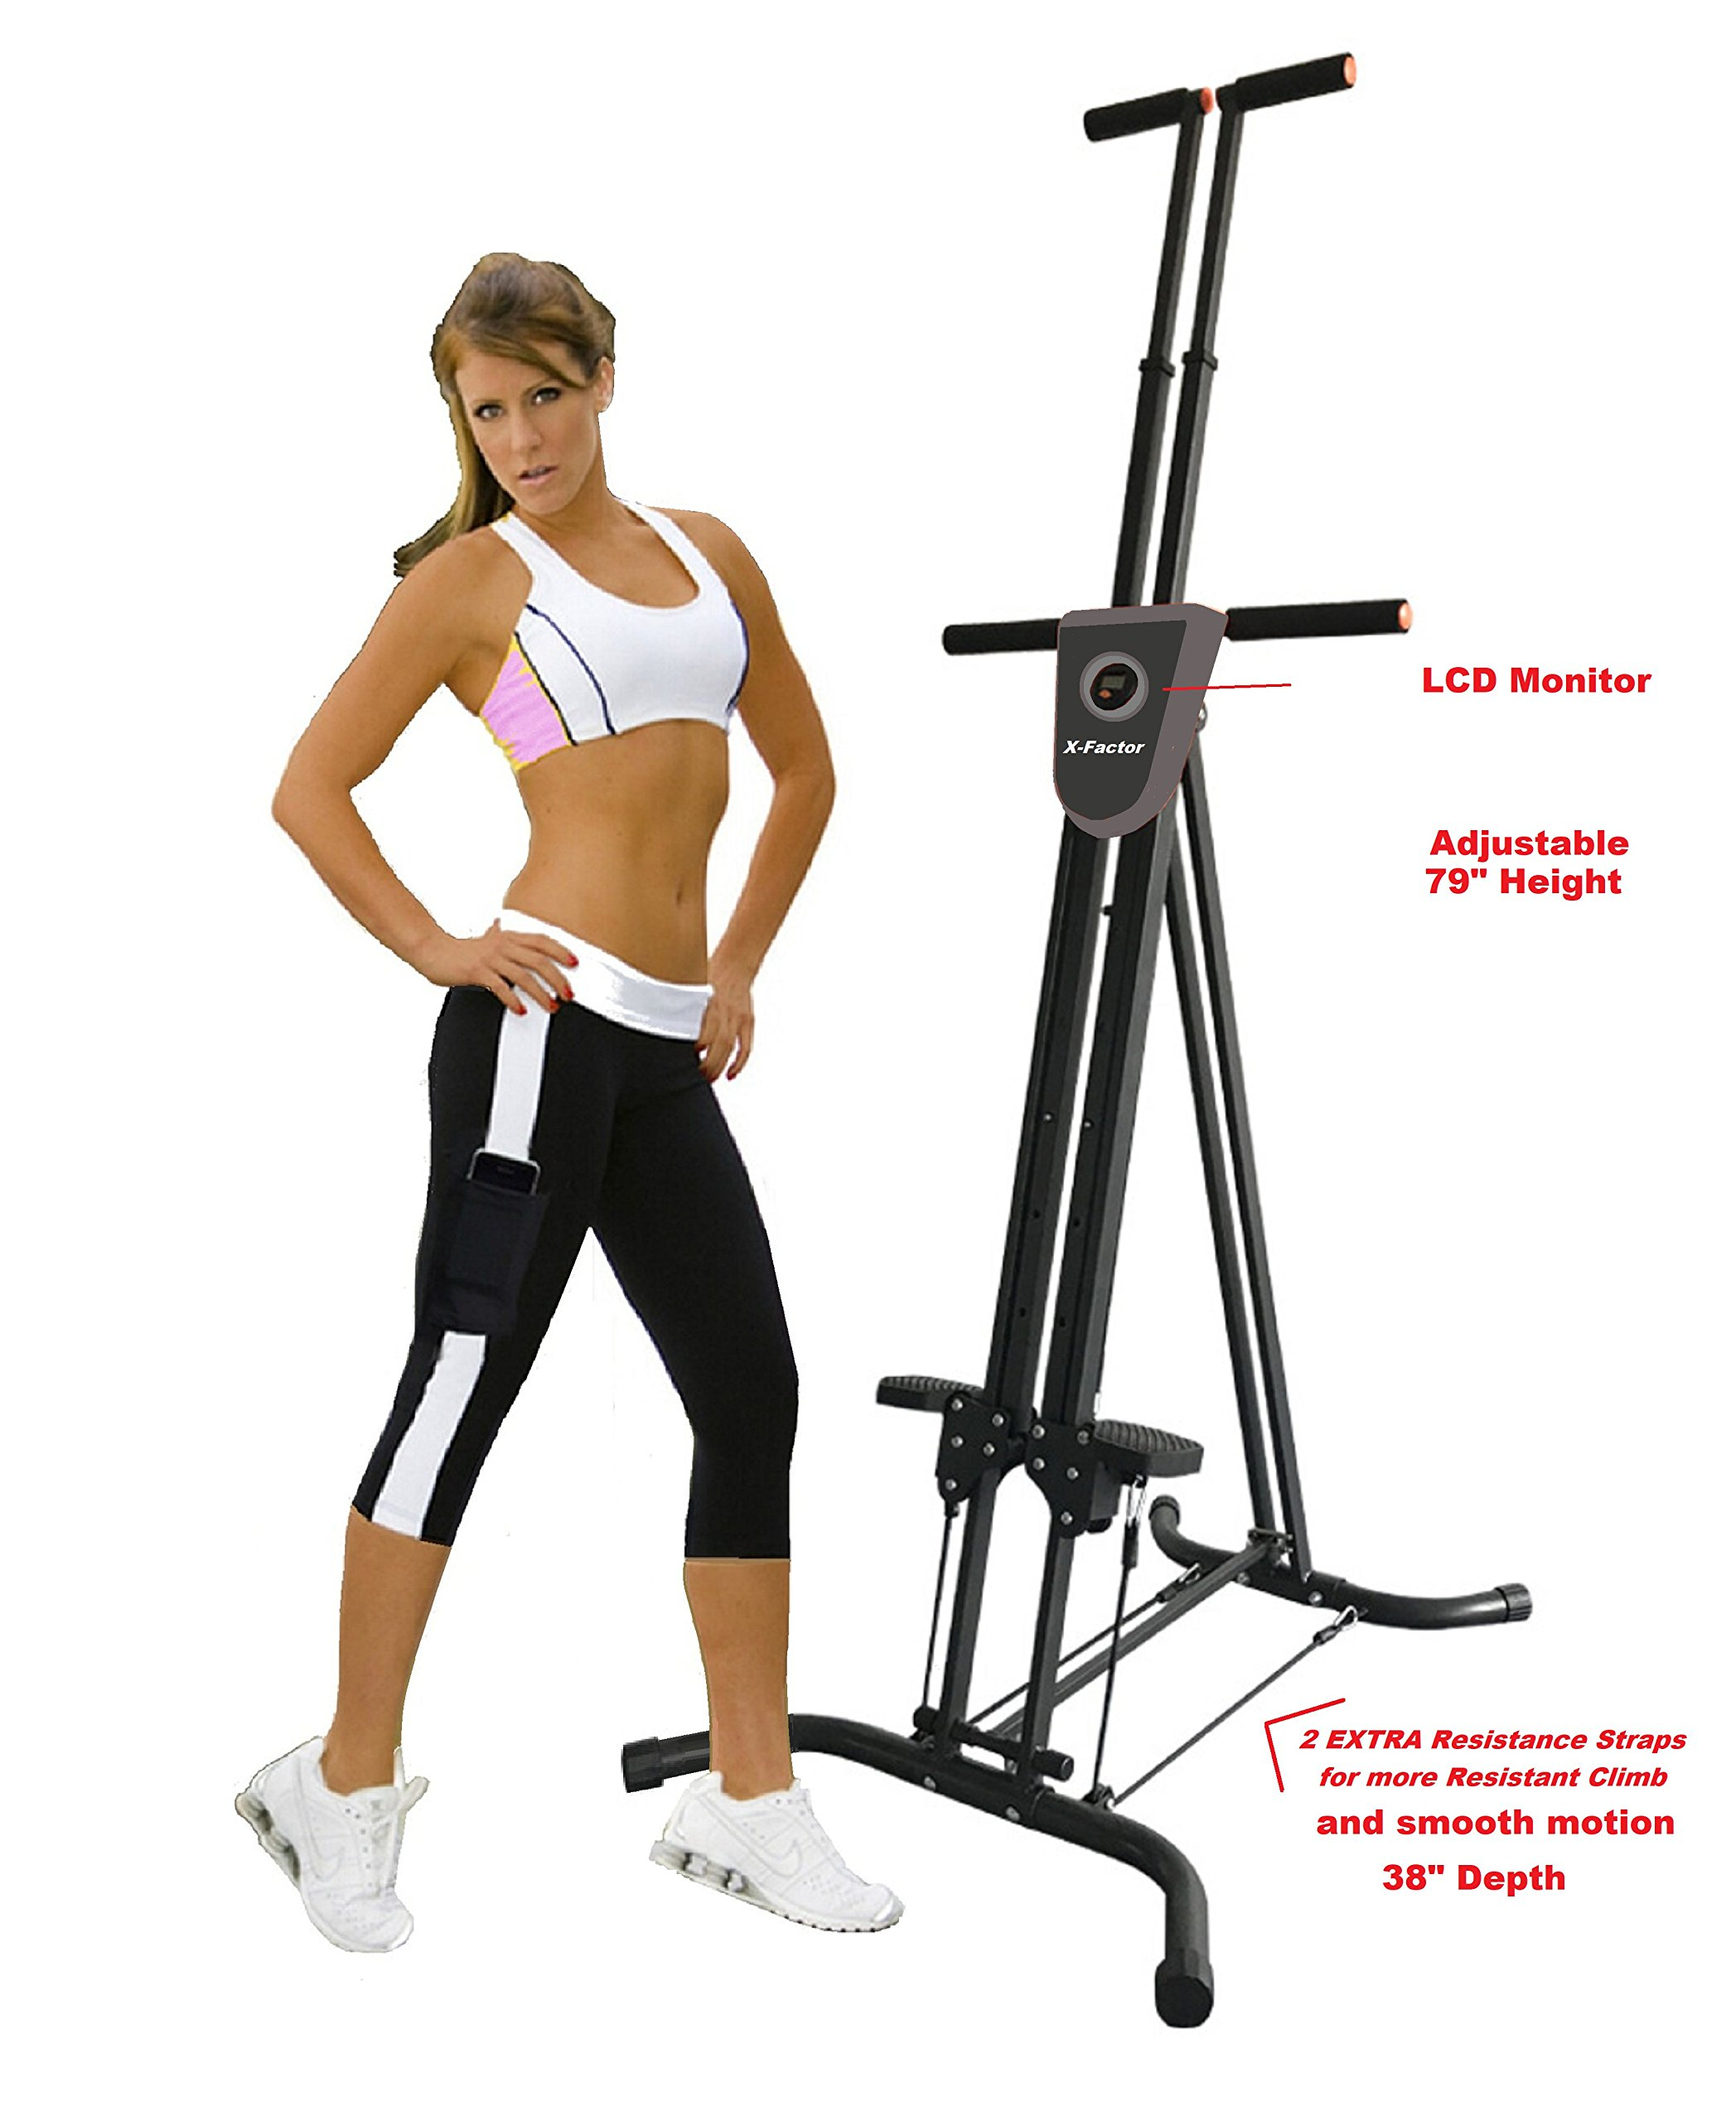 Vertical Climber Cardio Exercise X-Factor with monitor and resistance straps for smooth climbing by X-Factor